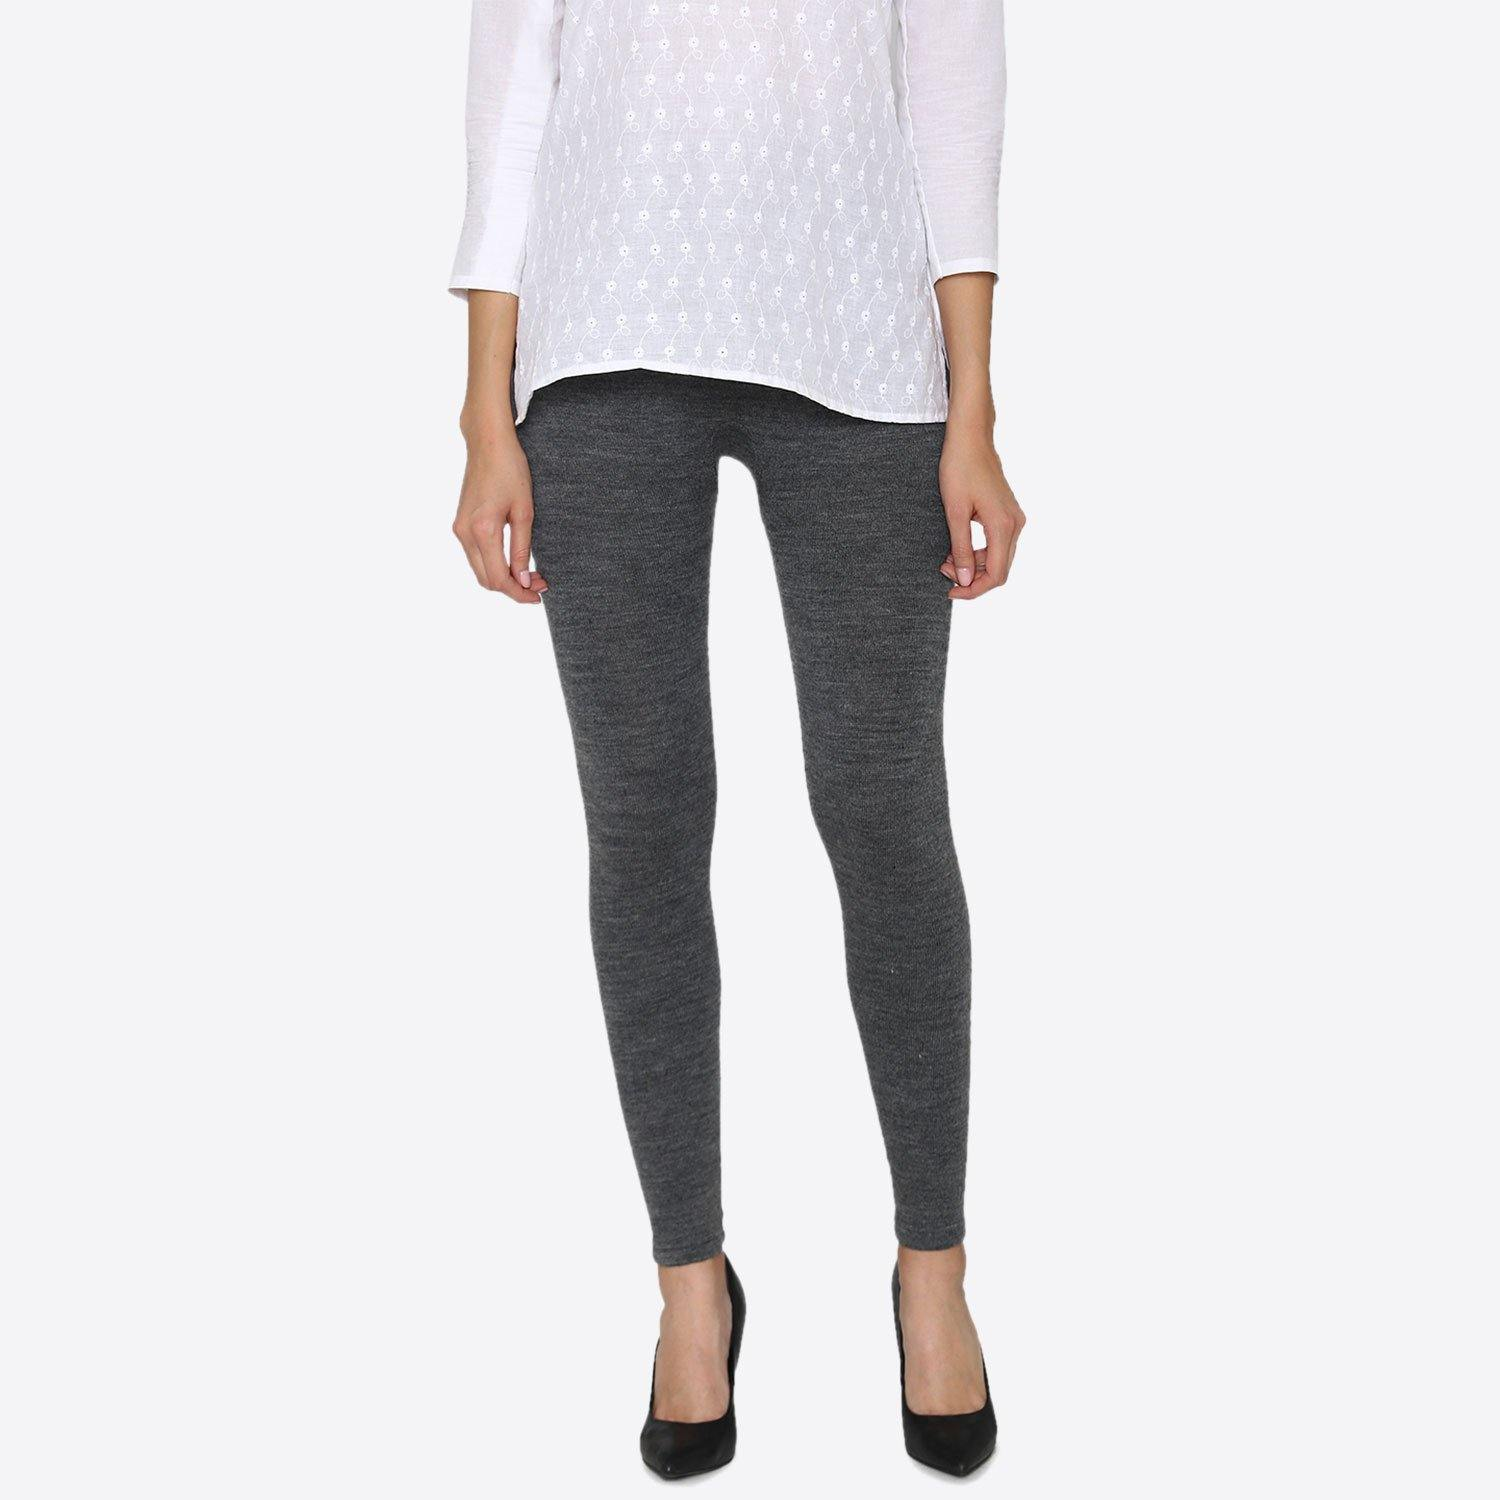 Woolen Leggings For Women